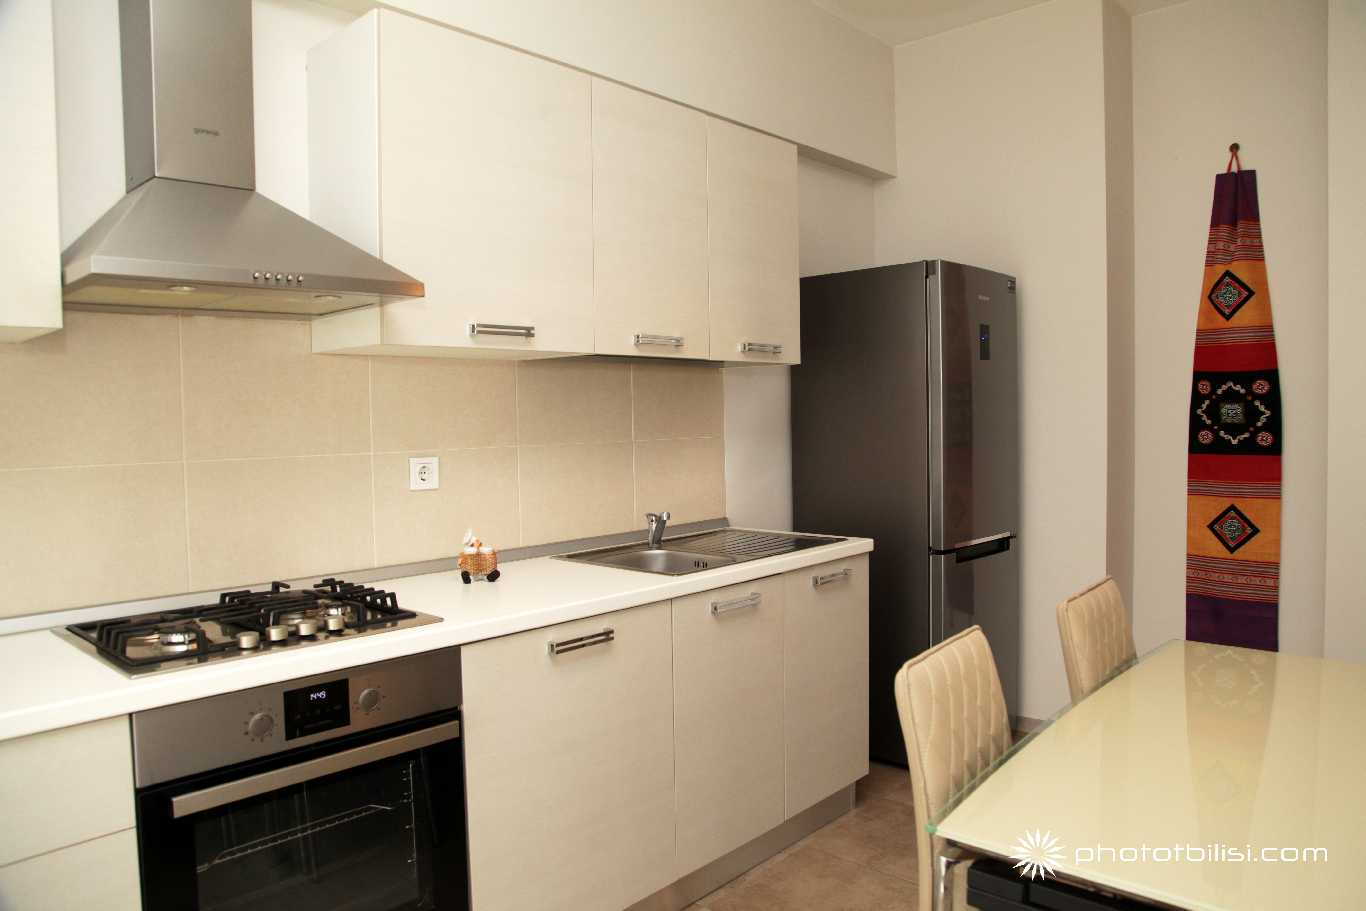 Rent-appartment-in-Tbilisi-IMG_0879